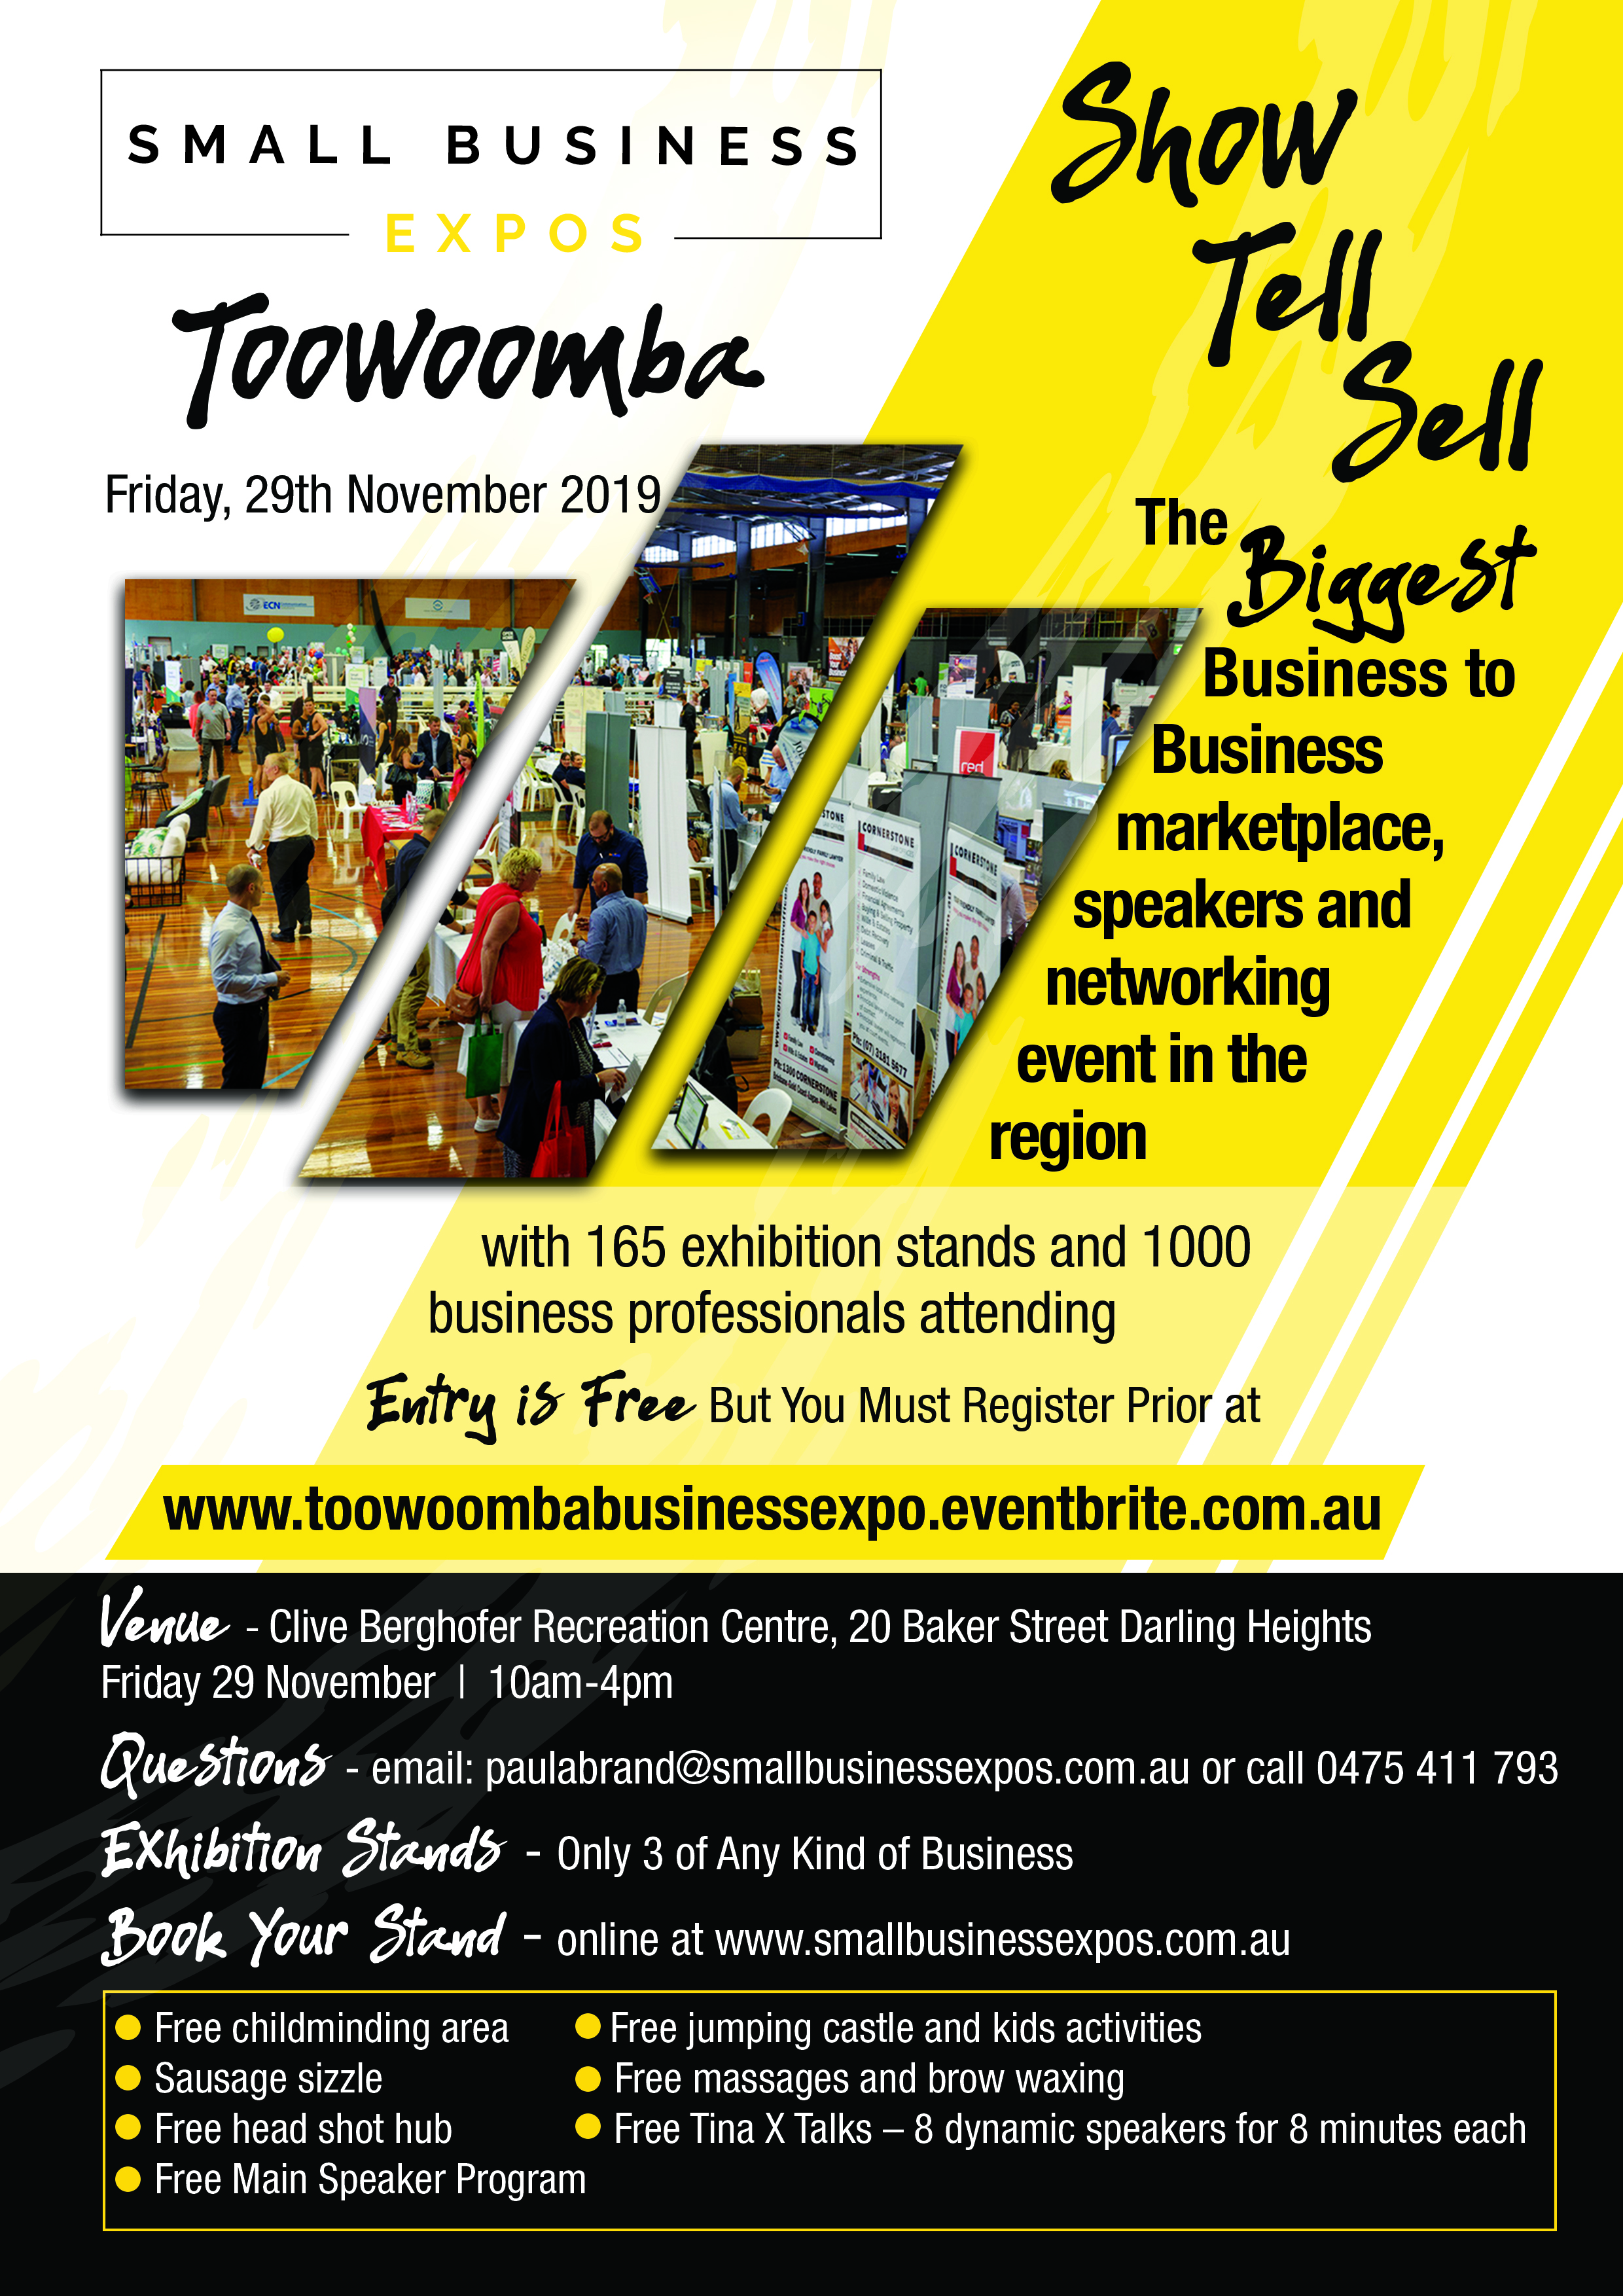 Business Expos | Brisbane | Gold Coast | Small Business Expos | A4 Flyer Toowoomba V2.0